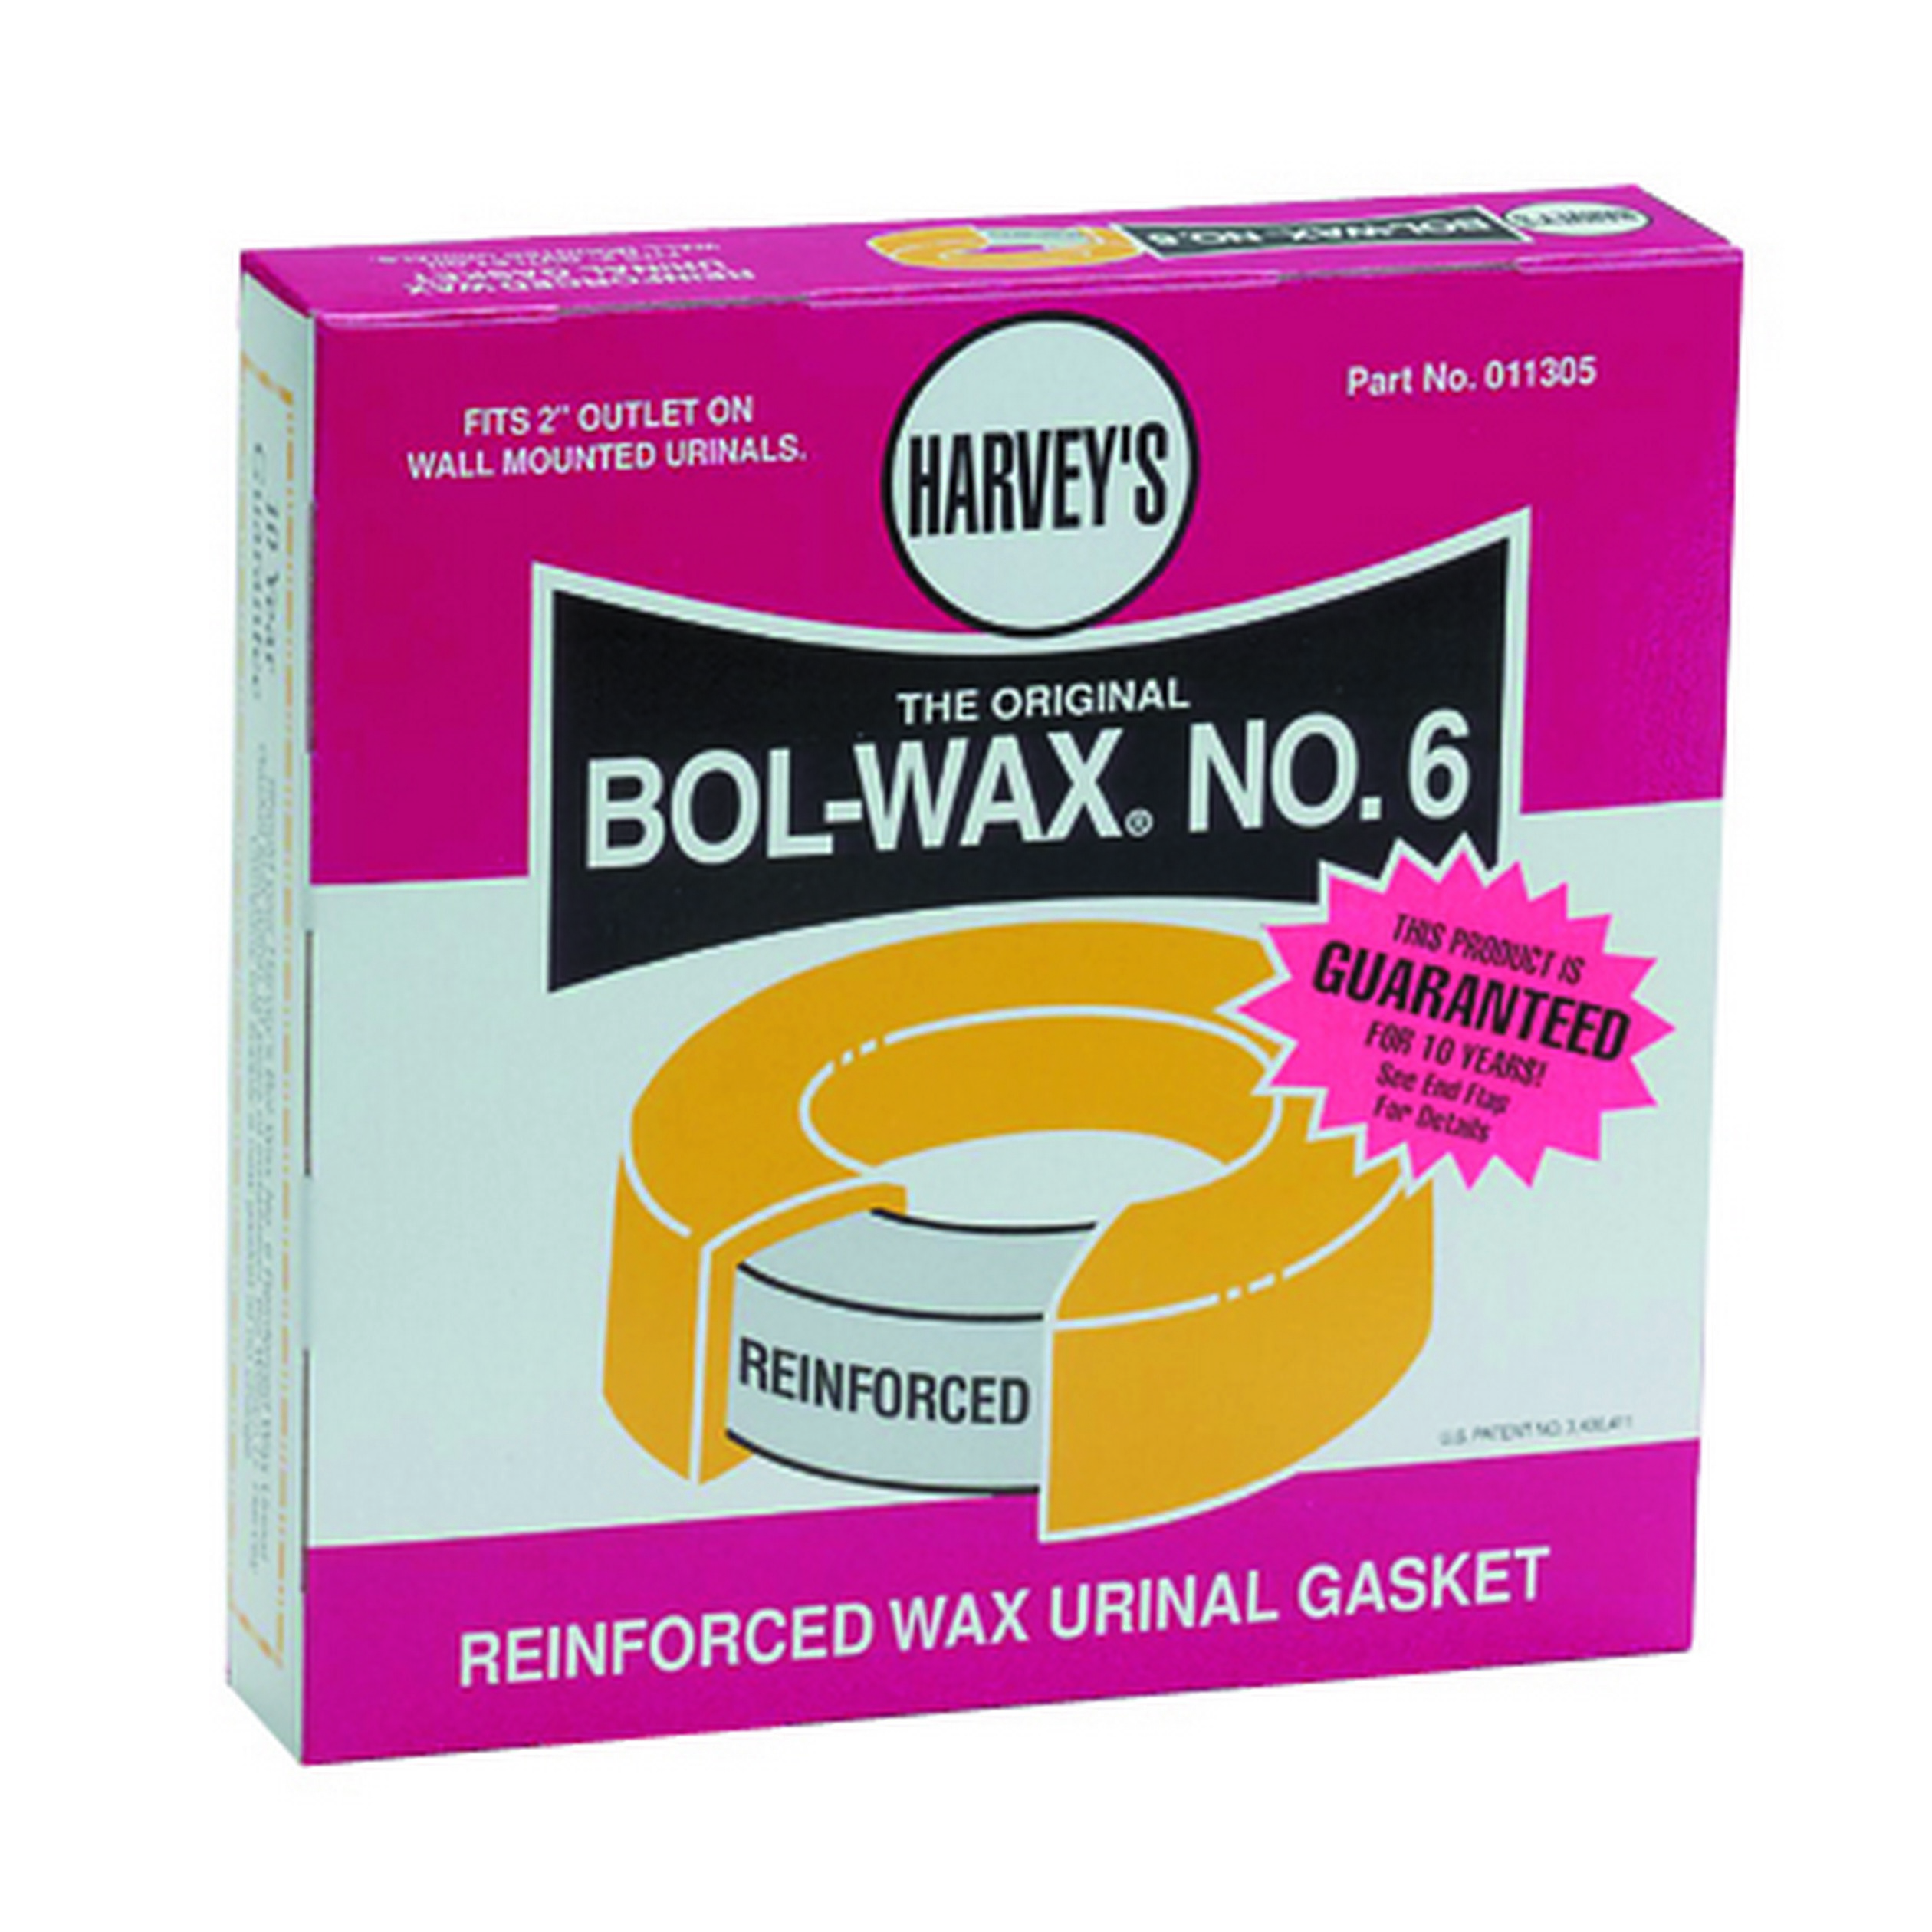 William H. Harvey 011305 Bol-Wax® No. 6 Specialty Reinforced Wax Gasket, For Use With Floor or Wall Outlet Toilet Bowl